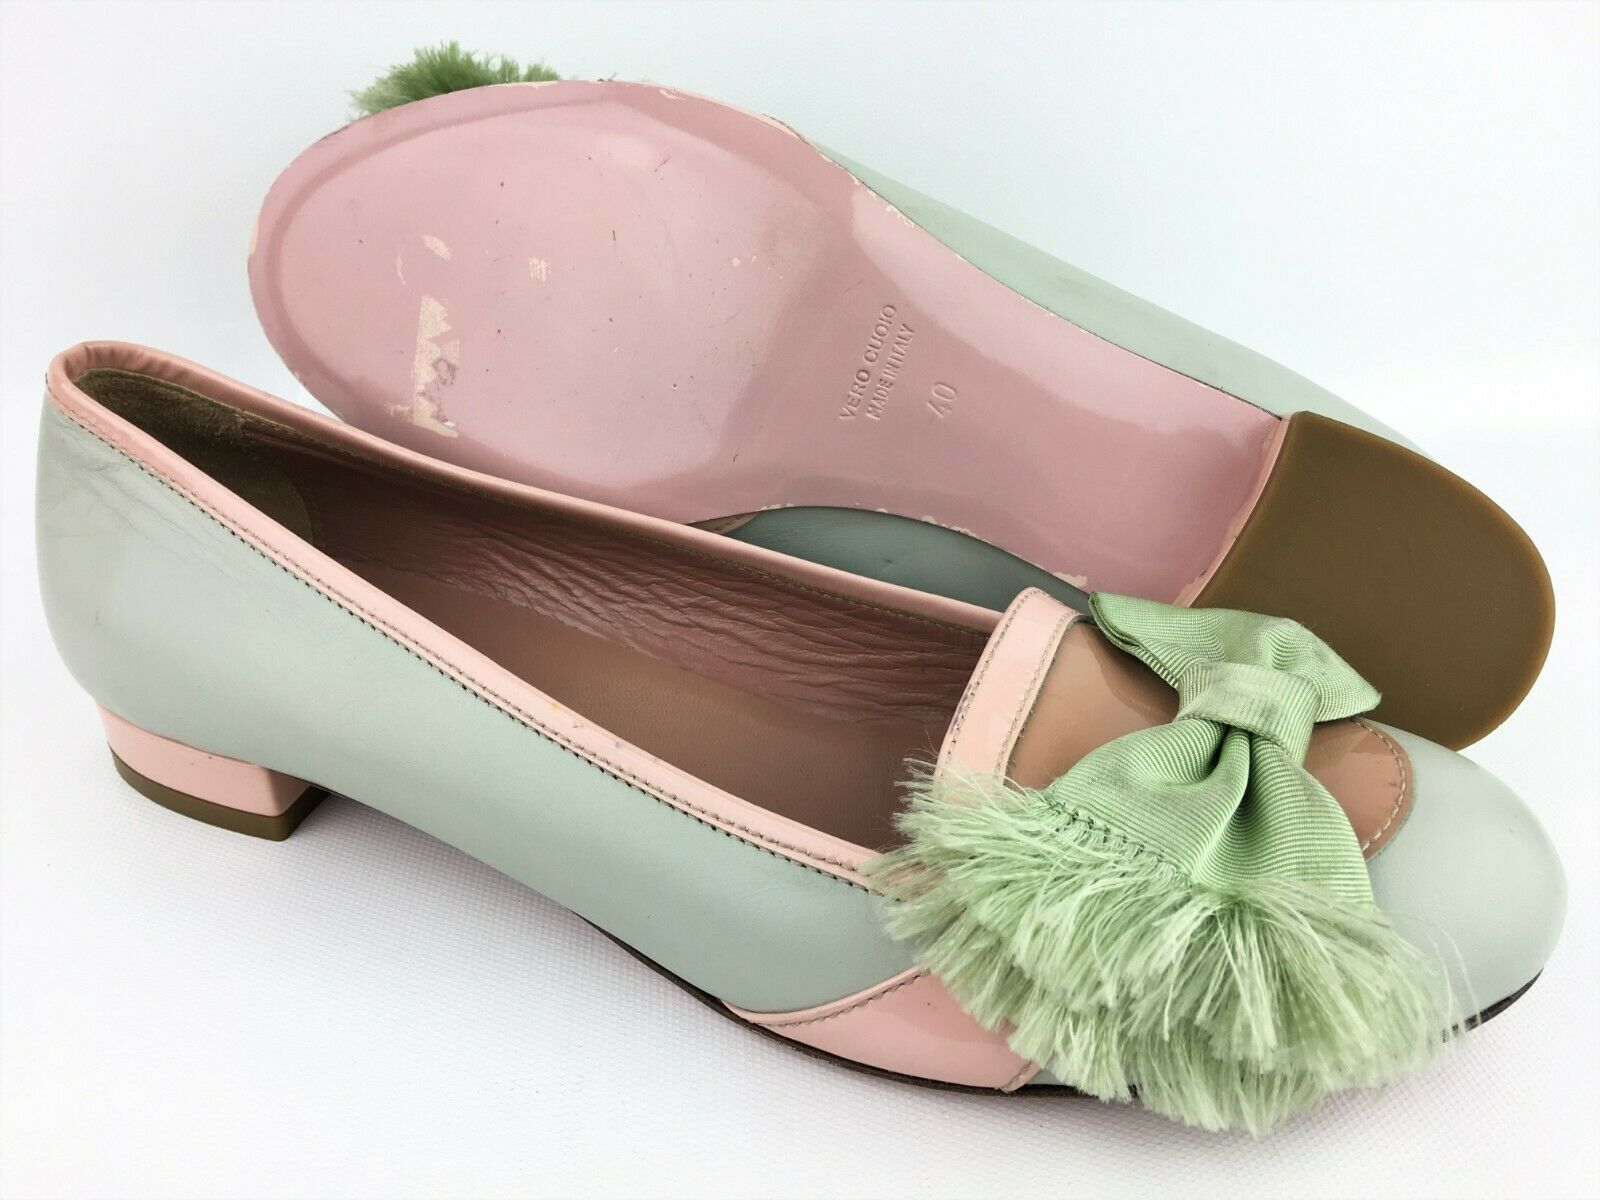 outlet in vendita RED Valentino Pale verde rosa Coloreblock Patent Leather Bow Flats Flats Flats sz  40 US 8.5  spedizione gratuita!